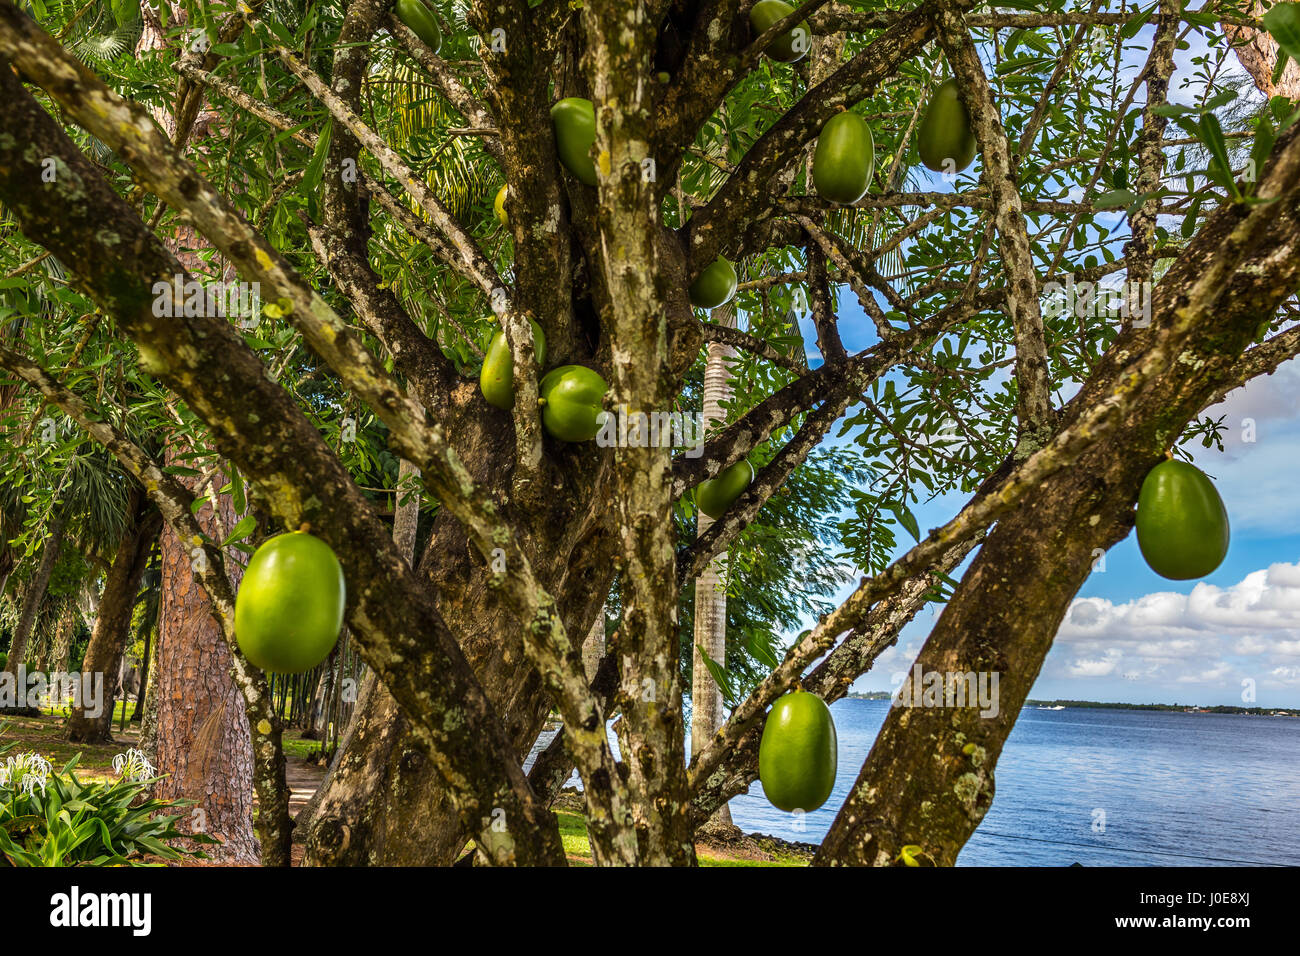 A Calabash Tree and its fruit growing in south Florida. - Stock Image